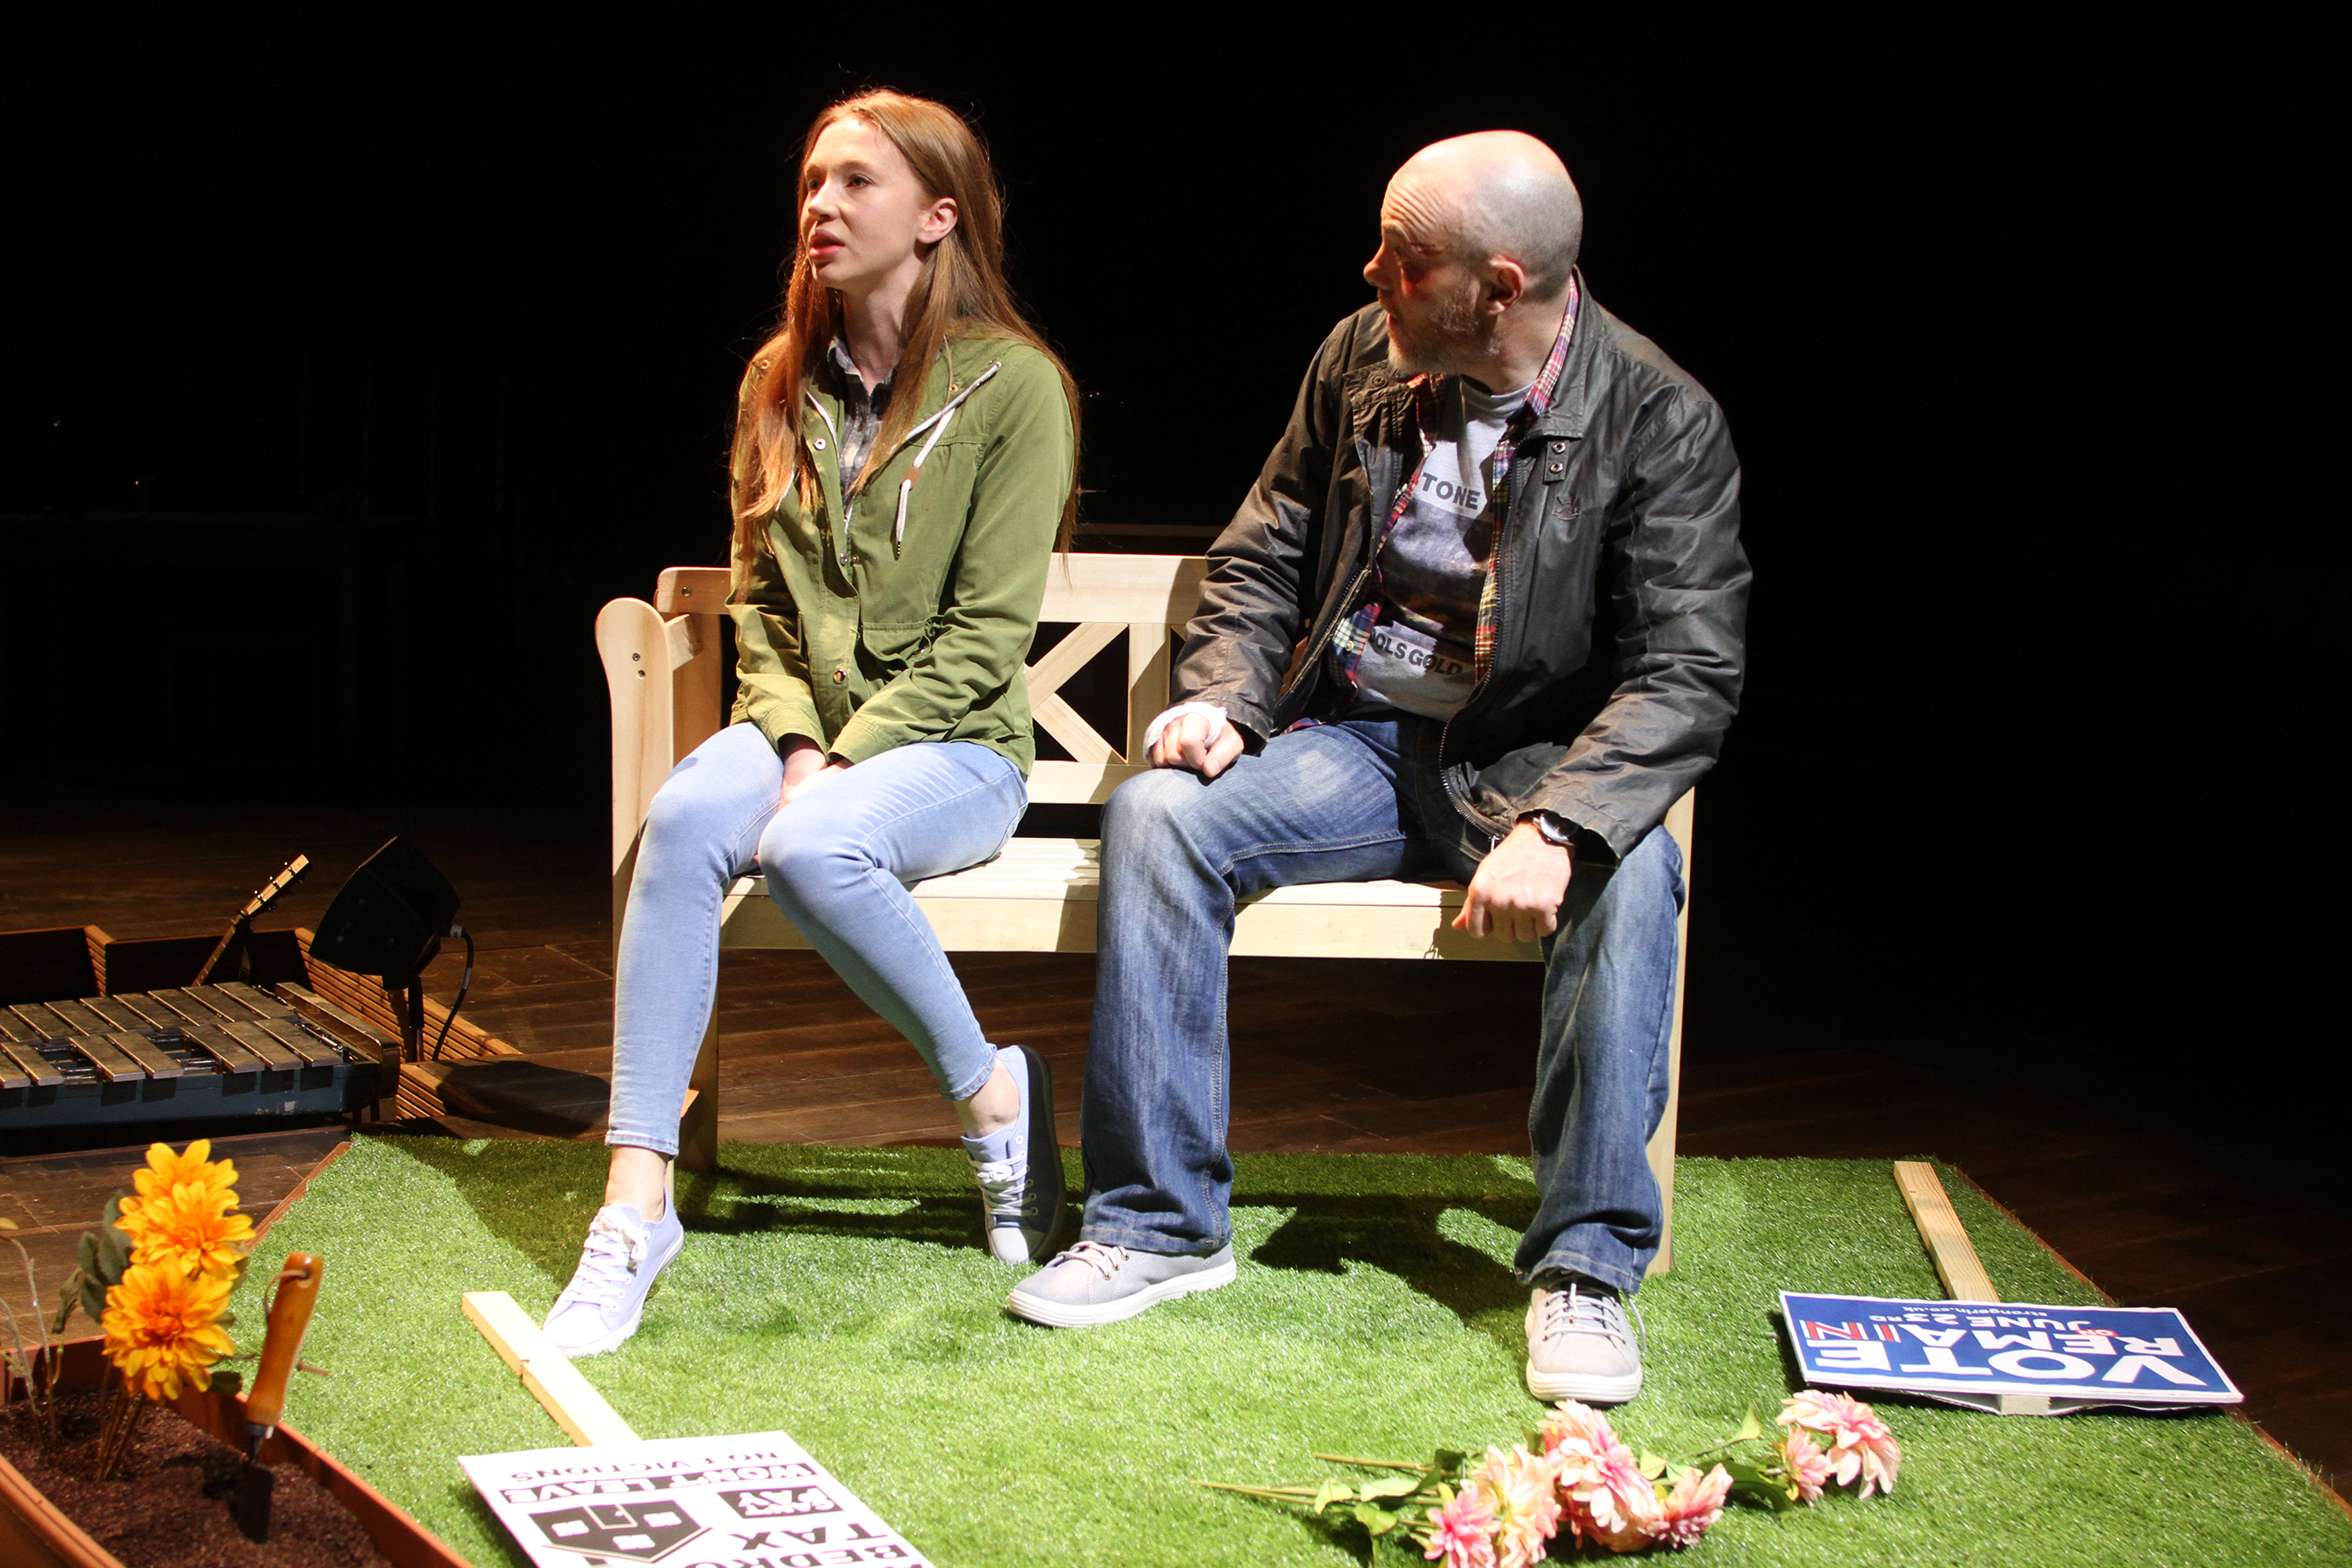 Emily Hughes & Liam Tobin in The Sum, photograph by Stephen Vaughan IMG_2358 #